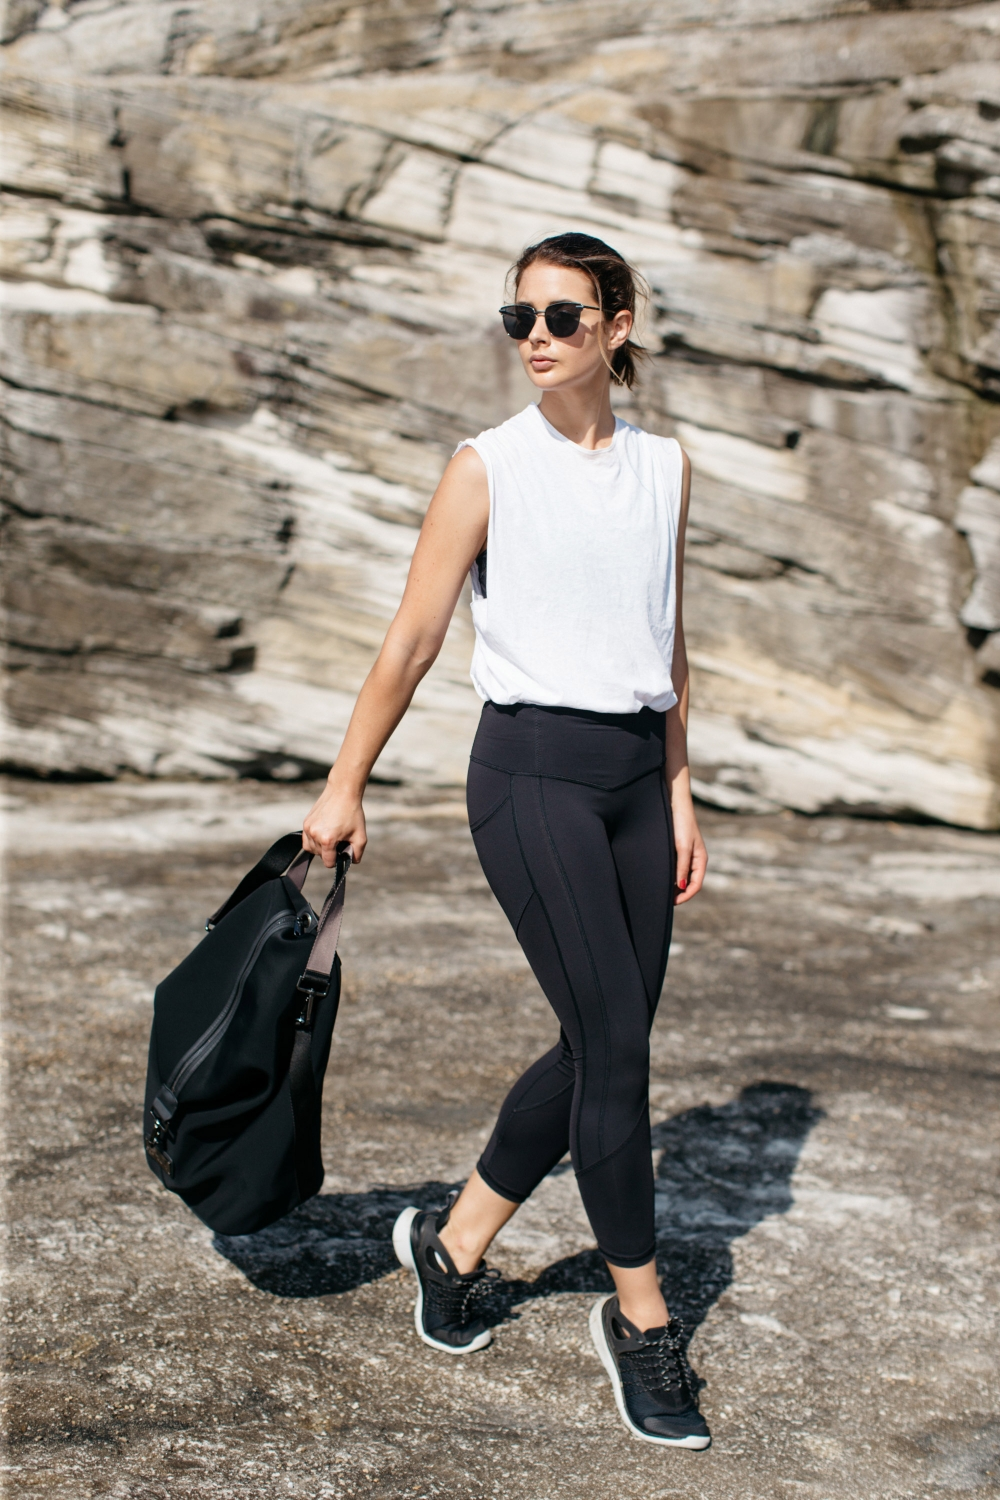 black and white gym outfit, activewear, health and fitness, exercise